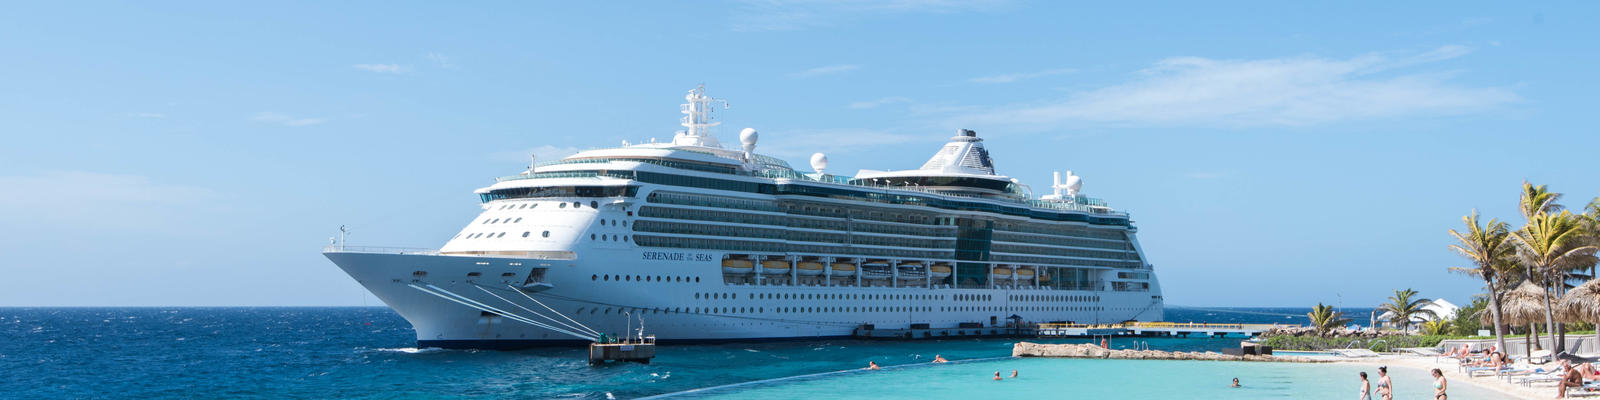 Serenade of the Seas (Photo: Cruise Critic)